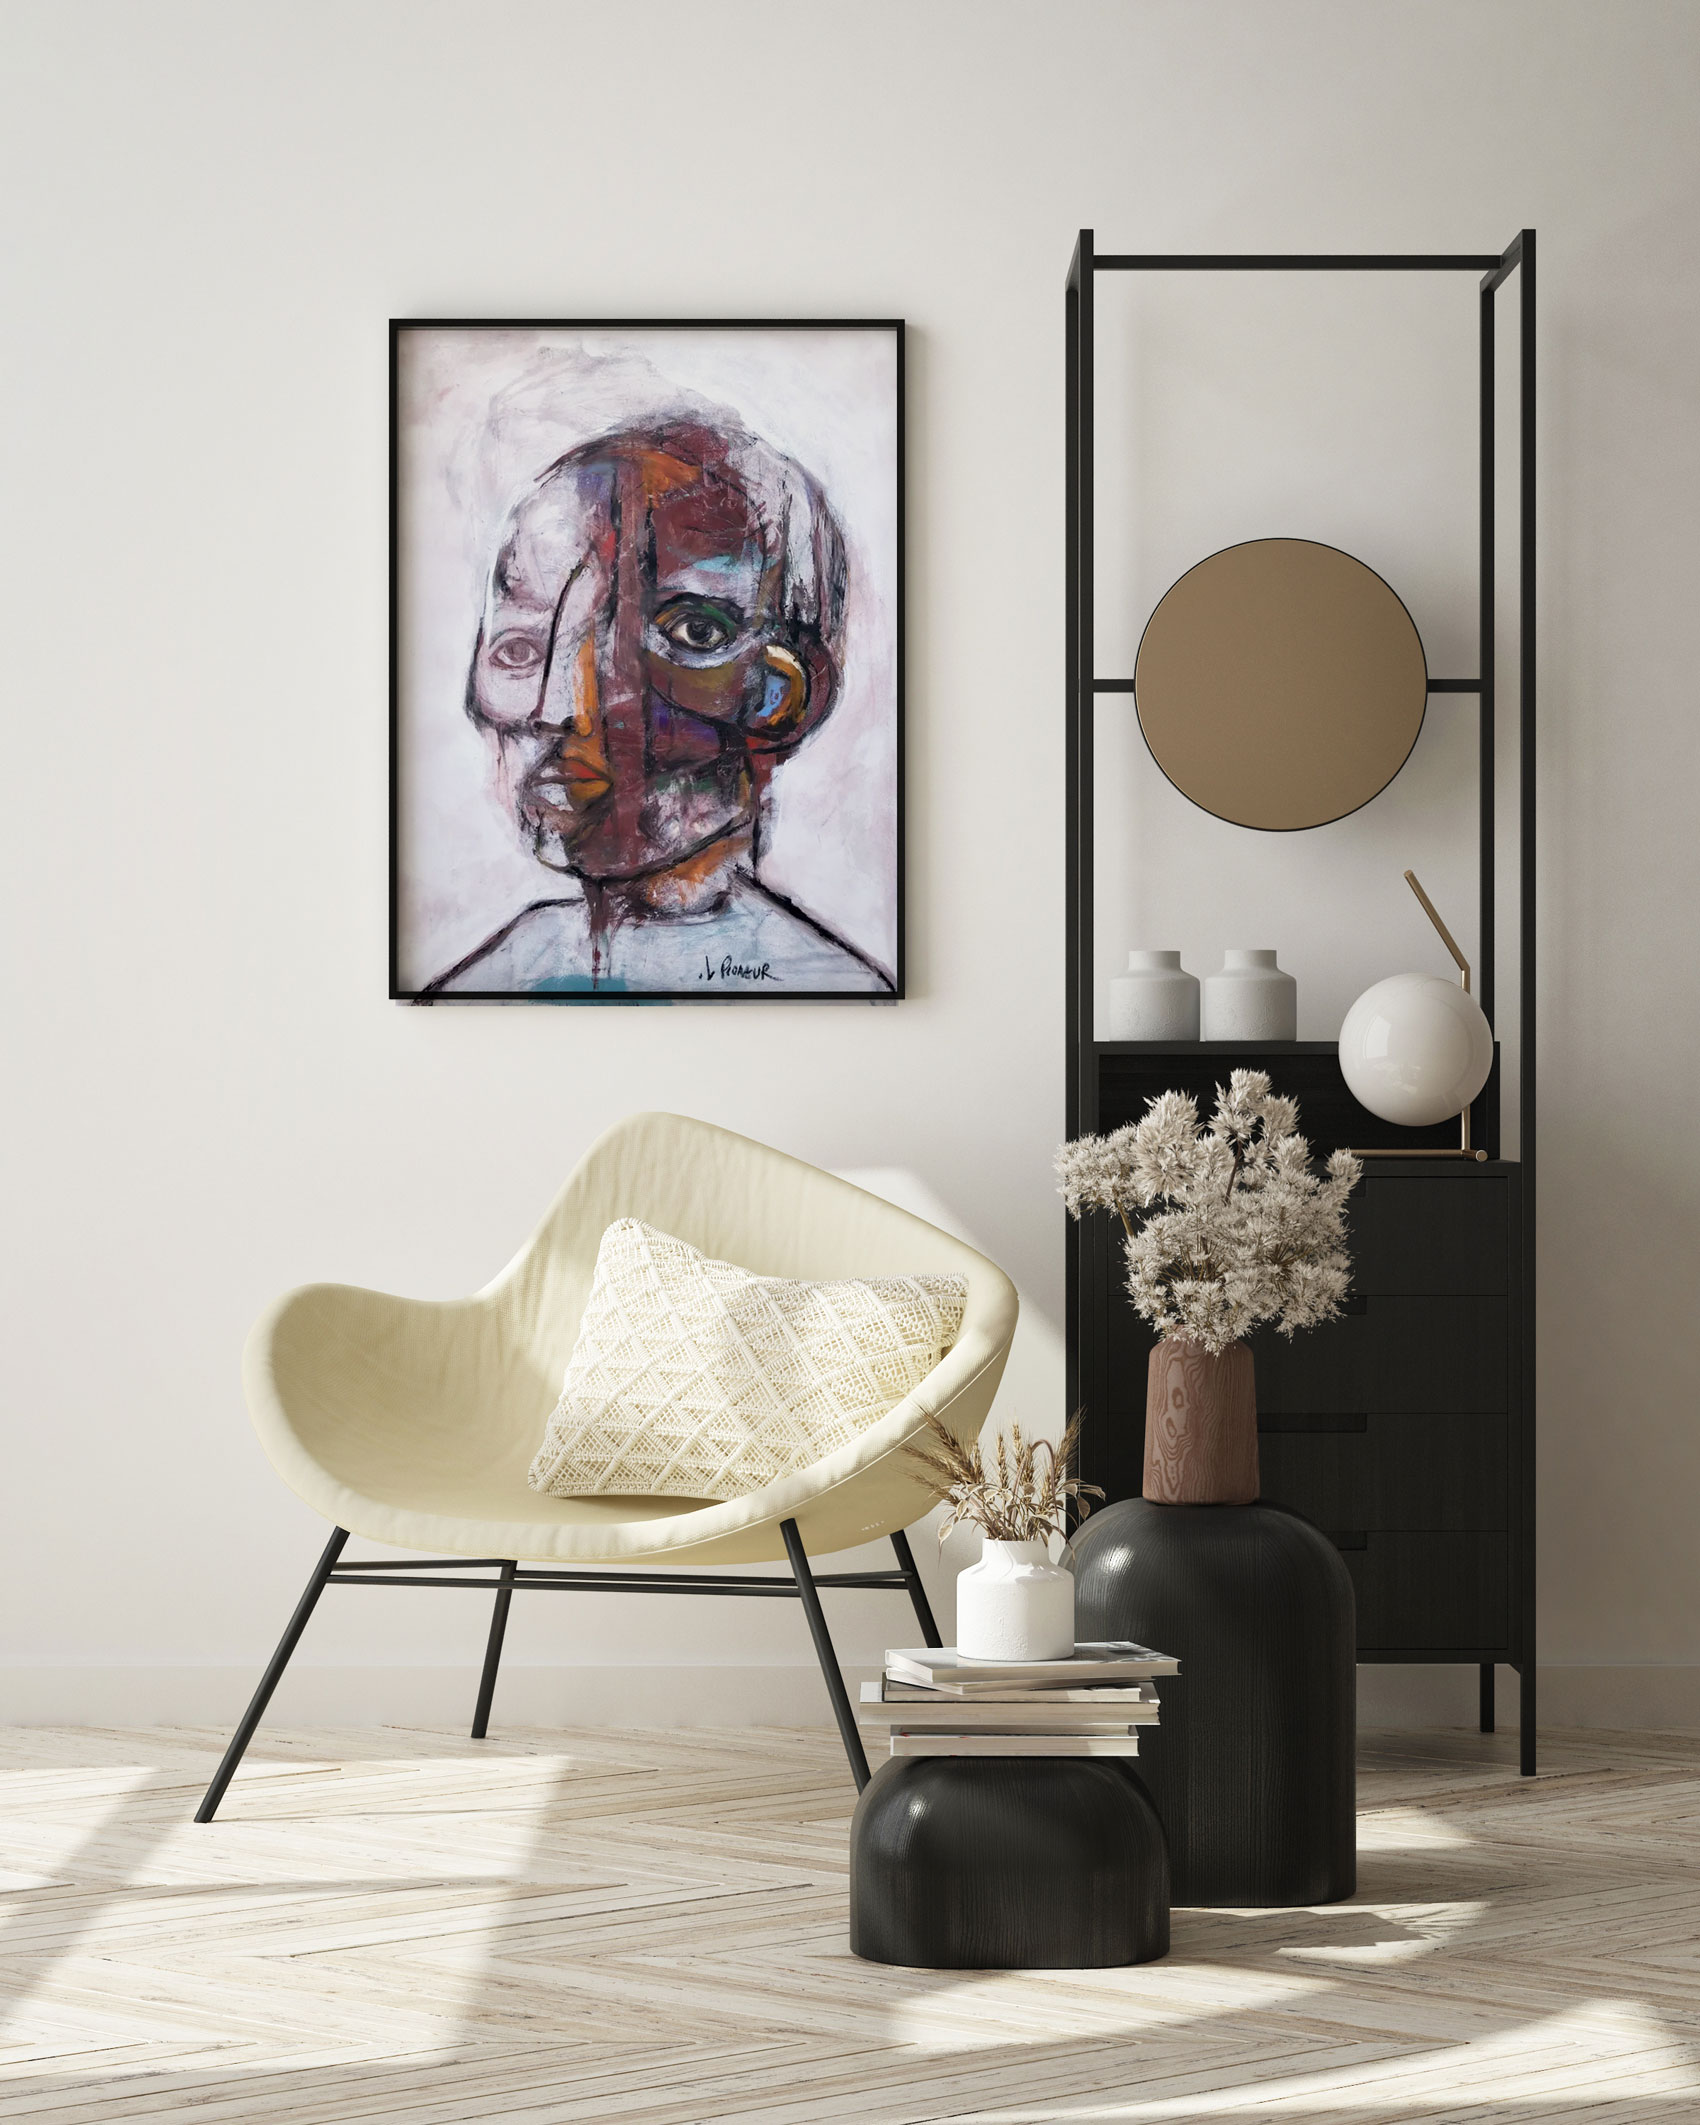 abstract face art in room